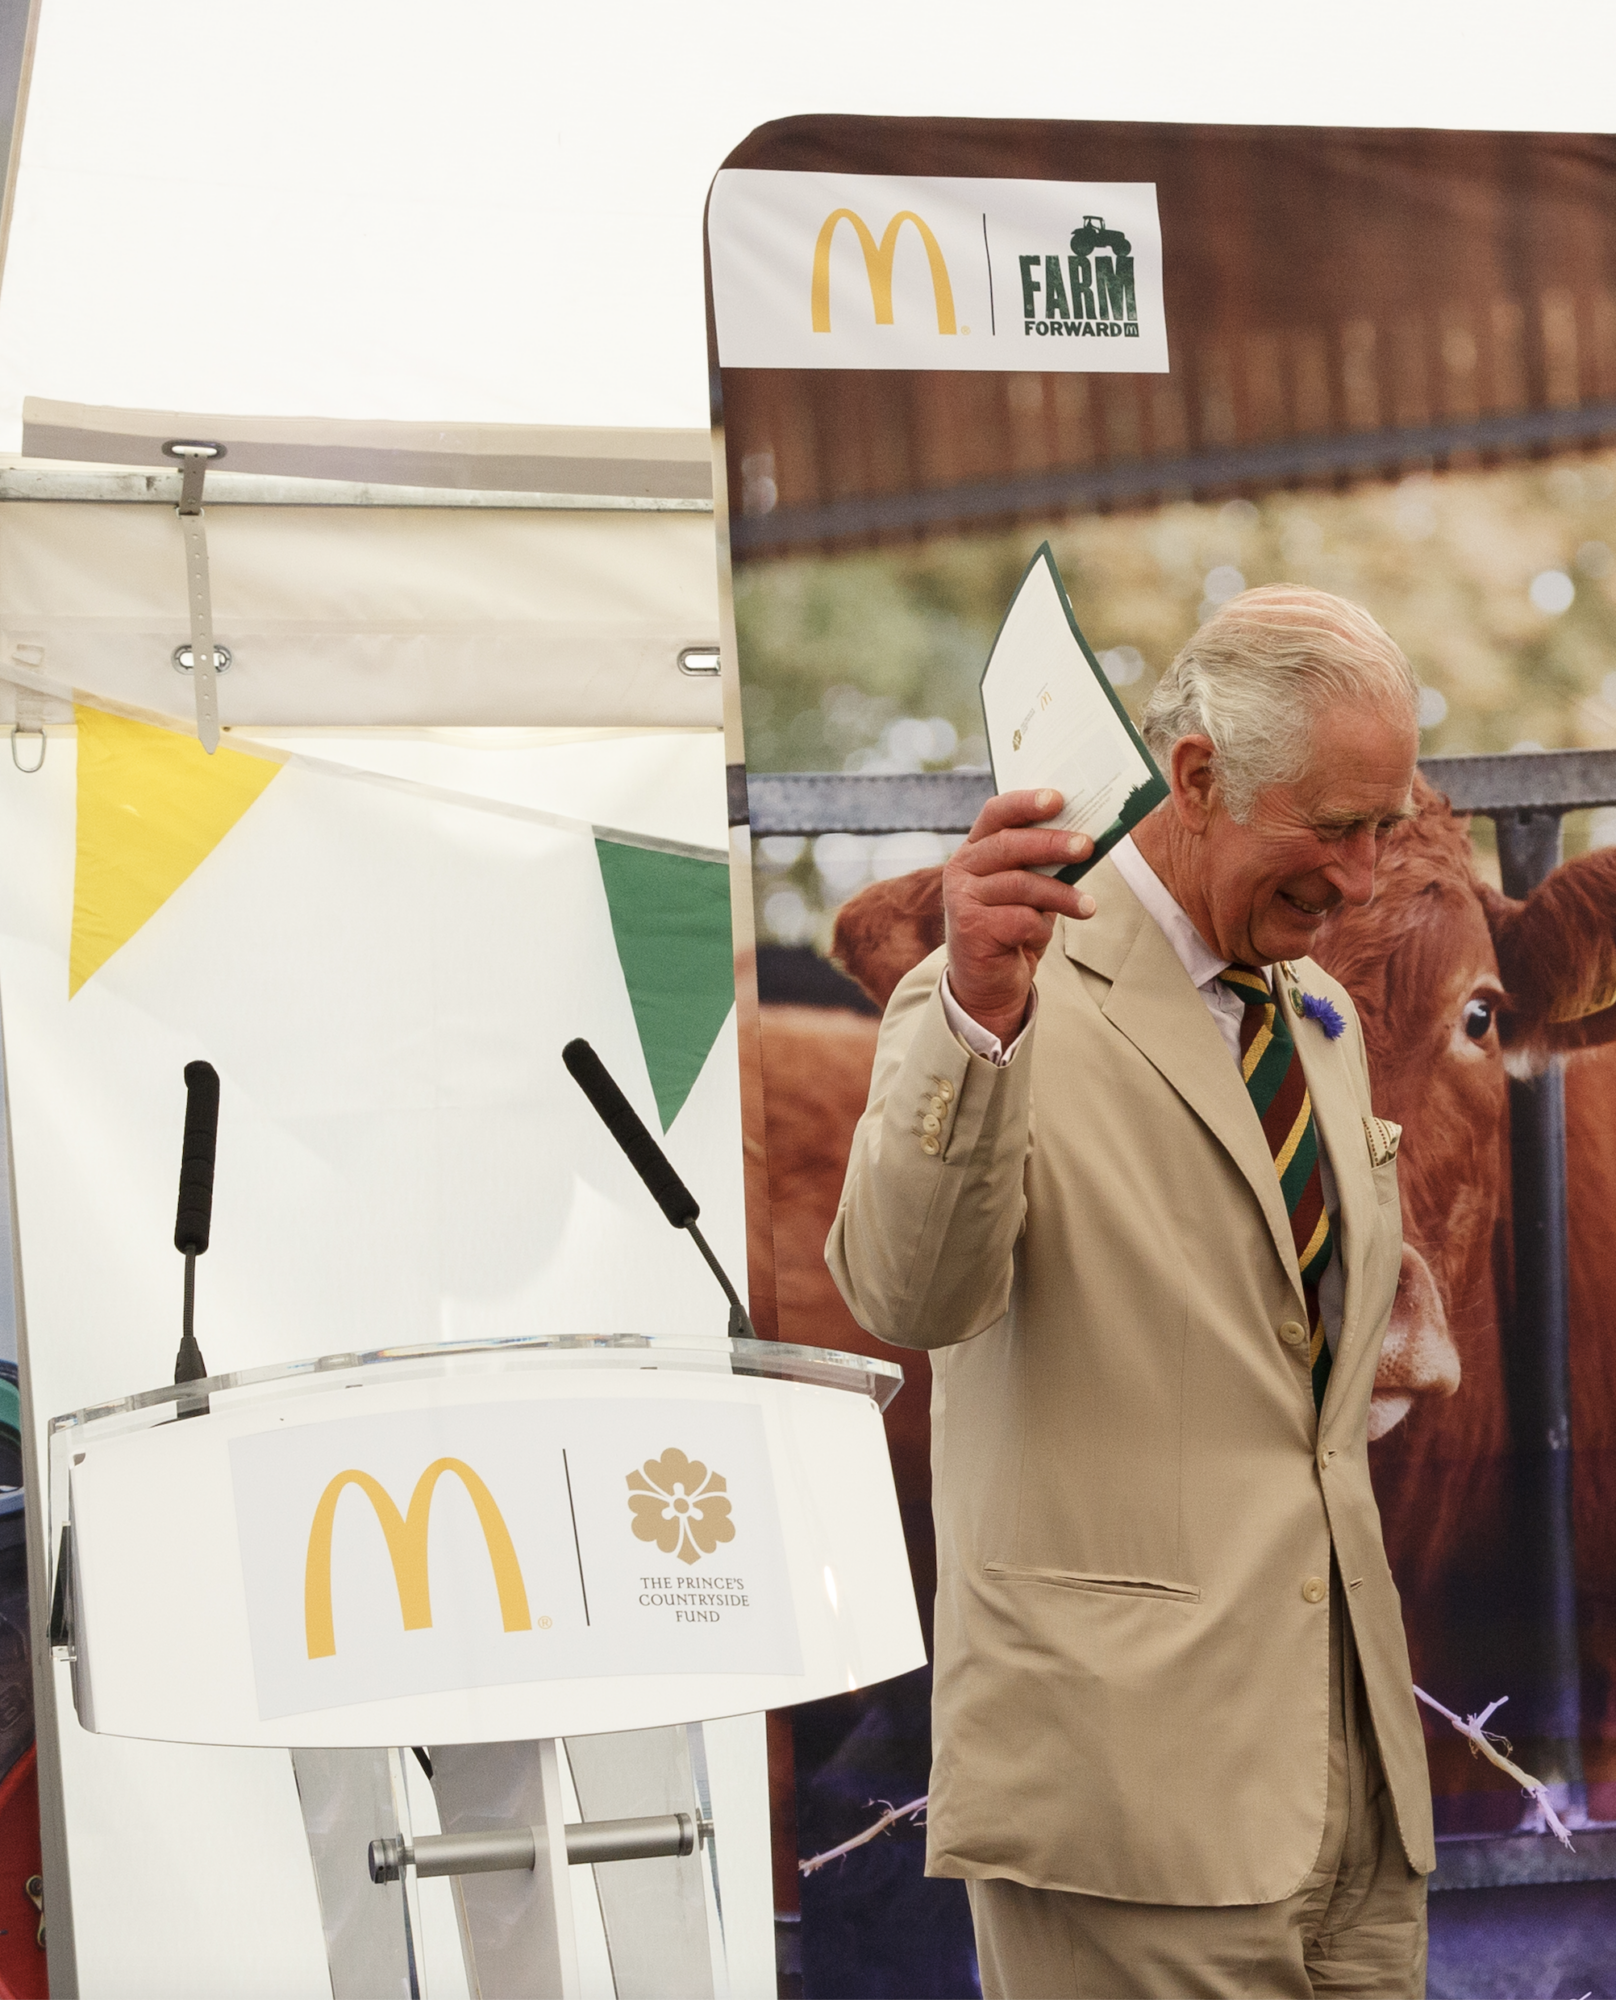 HRH the Prince of Wales speaking at The Great Yorkshire Show